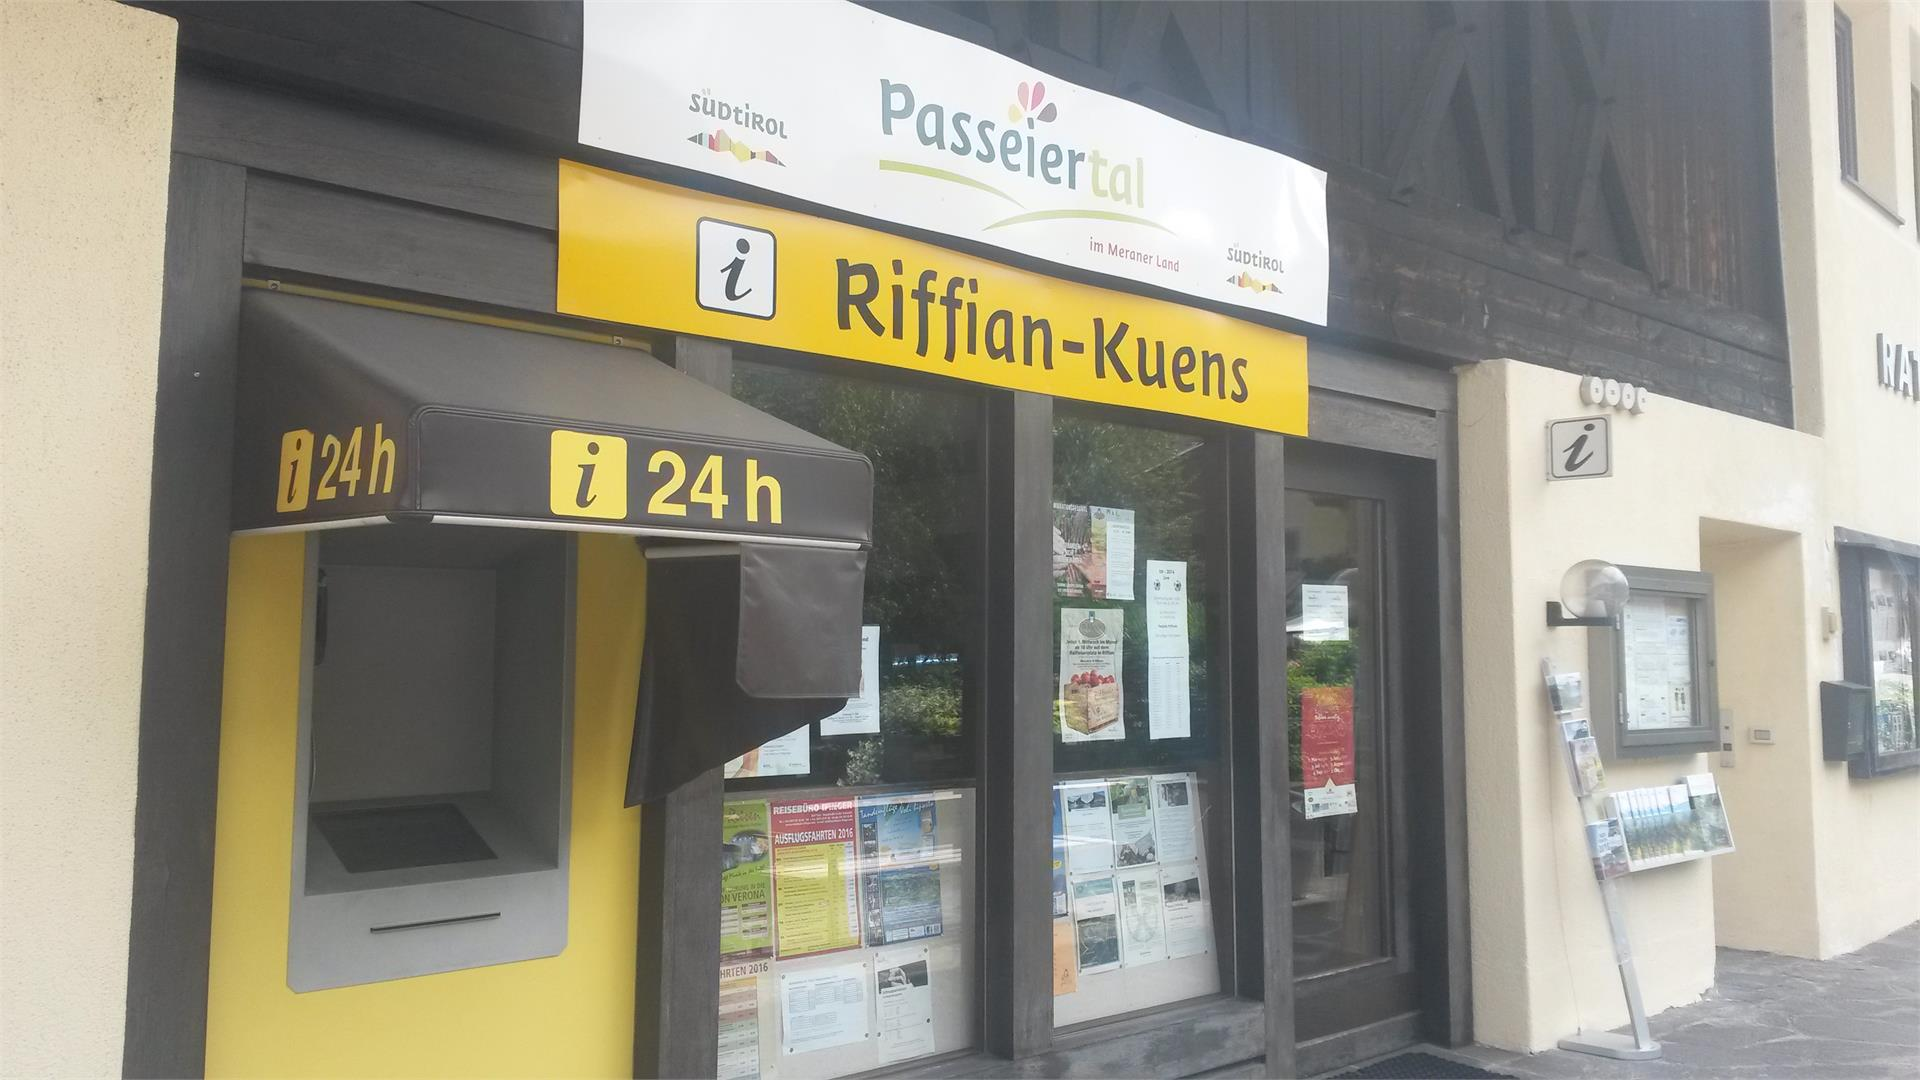 Tourist Office in Rifiano-Caines / Riffian-Kuens